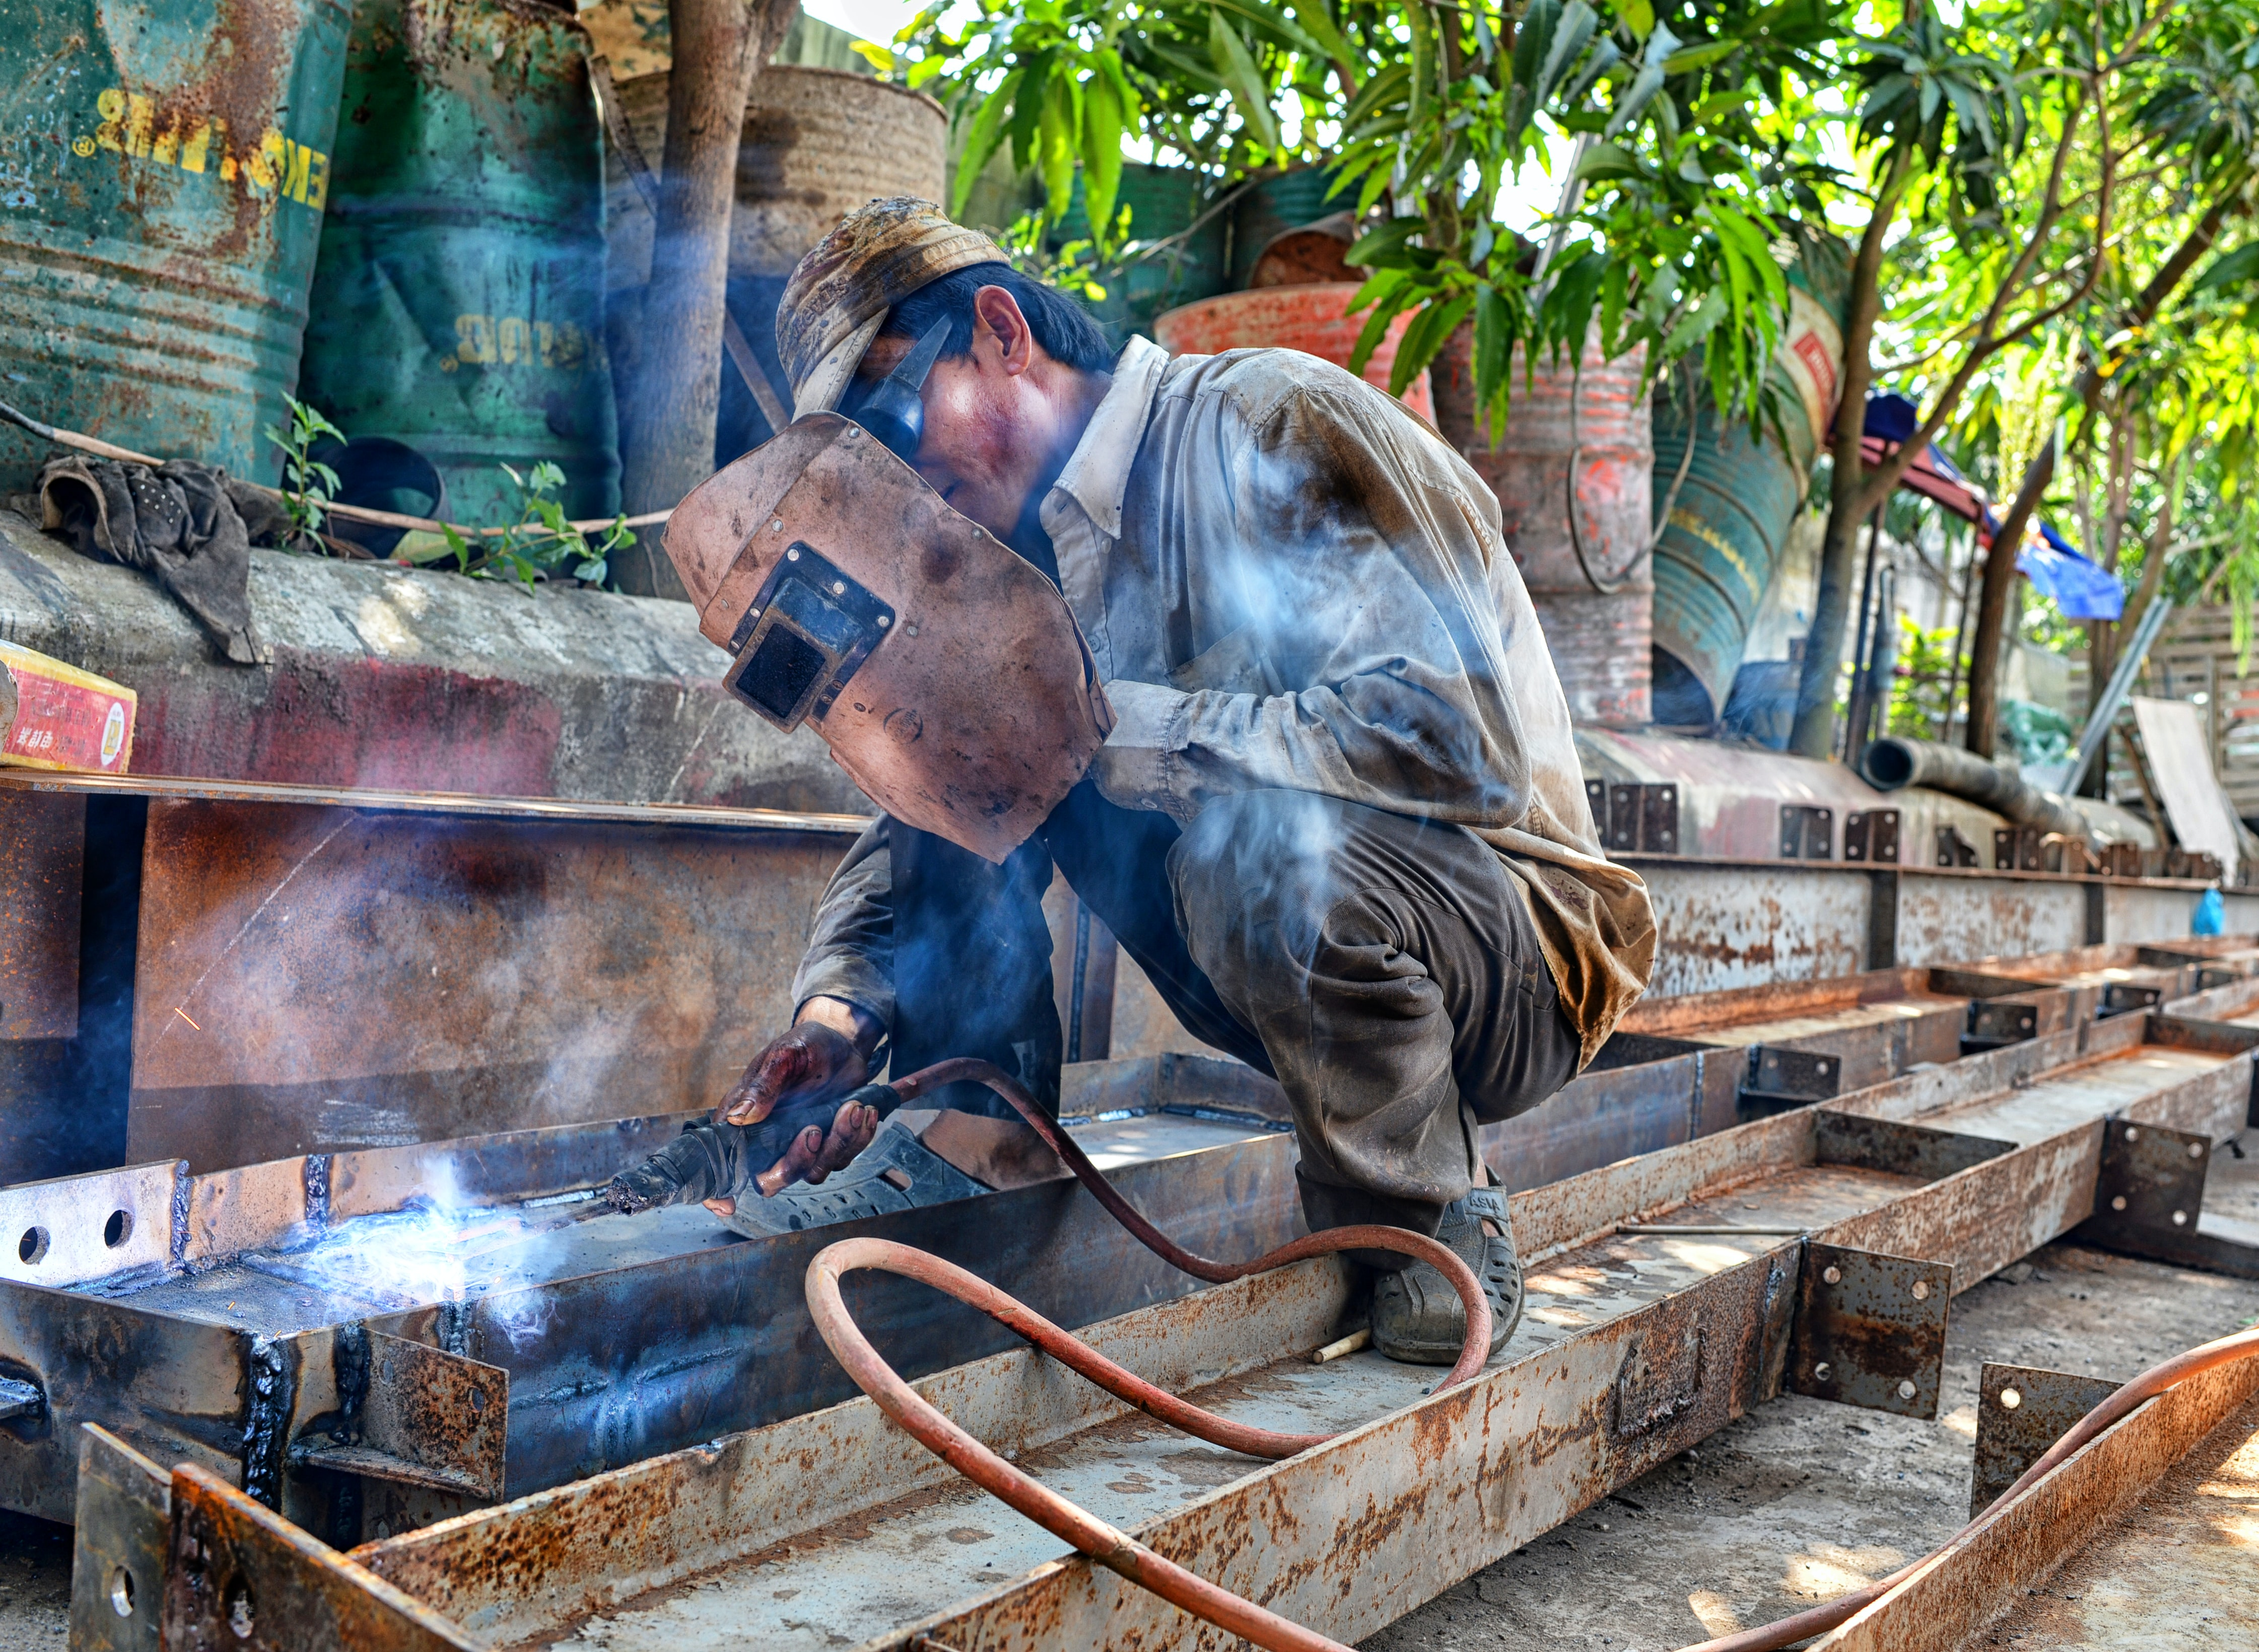 A crouching man with a welding helmet welding steel bars